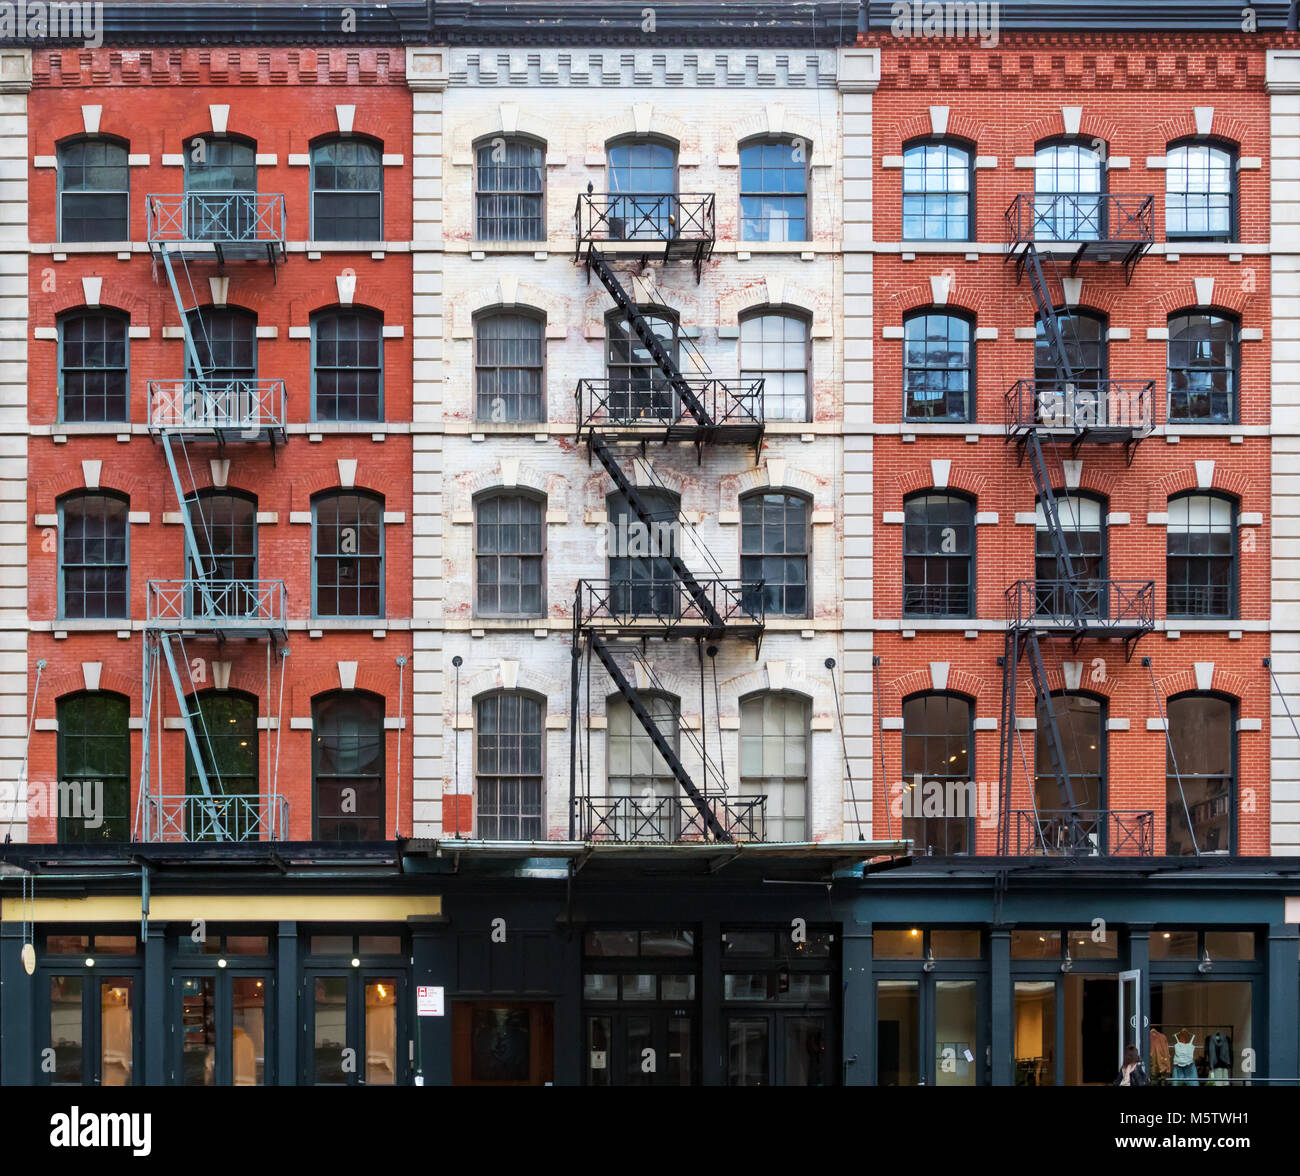 Wall Of Windows On Buildings In Tribeca New York City Stock Photo